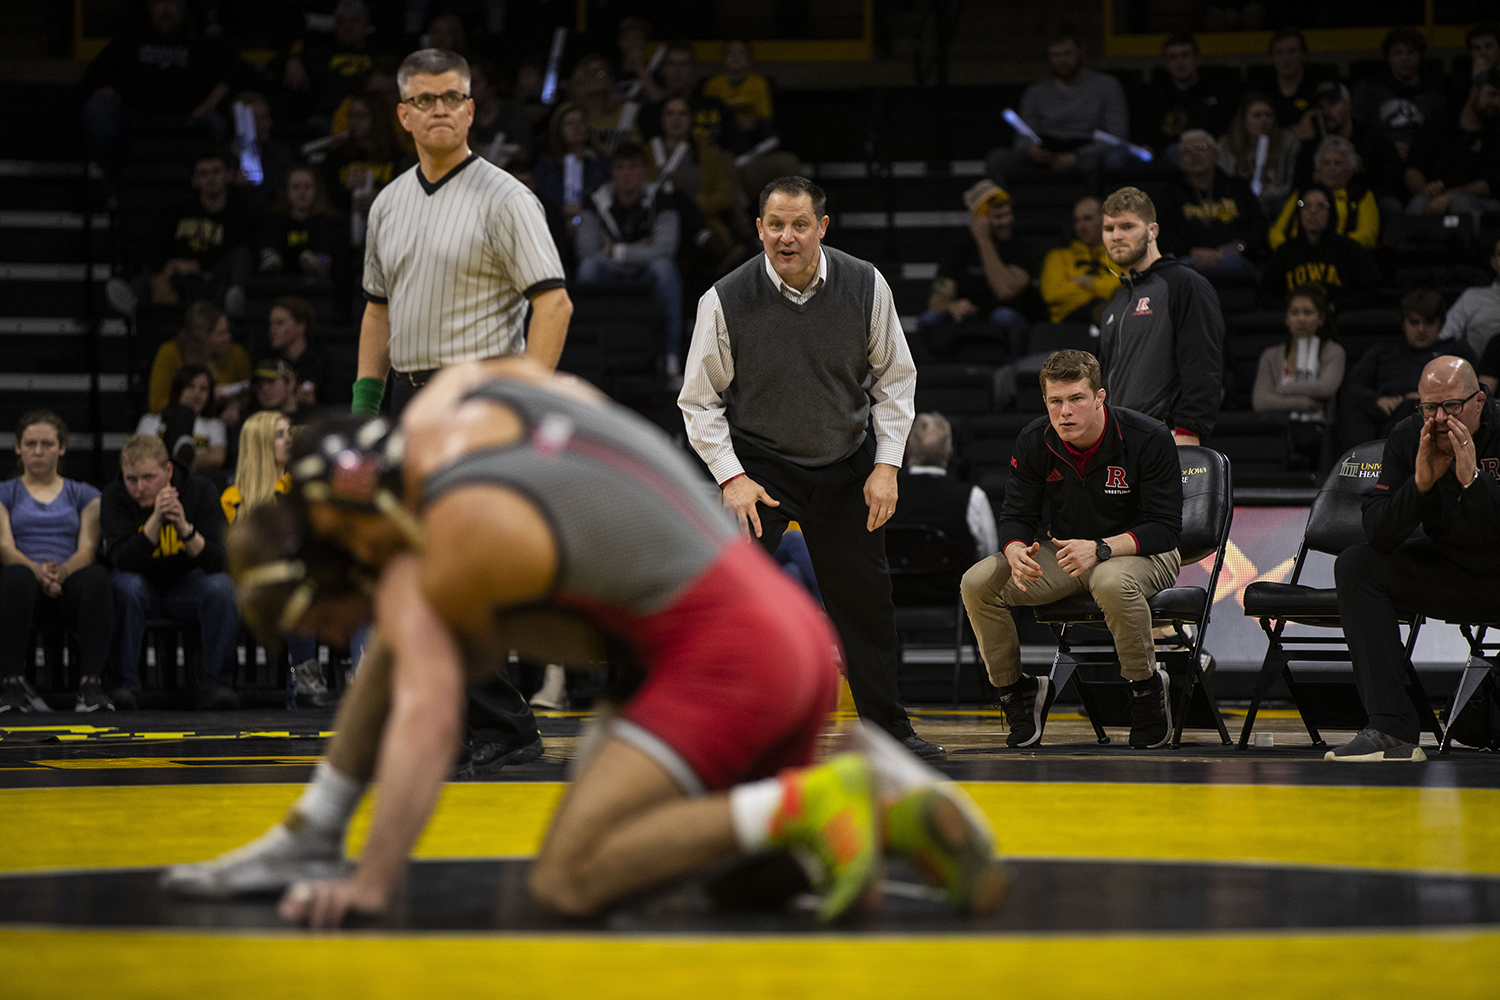 The+Rutgers+coaching+staff+watch+Iowa%27s+Mitch+Bowman+wrestle+Rutgers%27+Joseph+Grello+during+the+Iowa%2FRutgers+wrestling+meet+at+Carver-Hawkeye+Arena+on+Friday%2C+January+18%2C+2019.+Grello+defeated+Bowman%2C+3-0.+The+Hawkeyes+defeated+the+Scarlet+Knights%2C+30-6.+